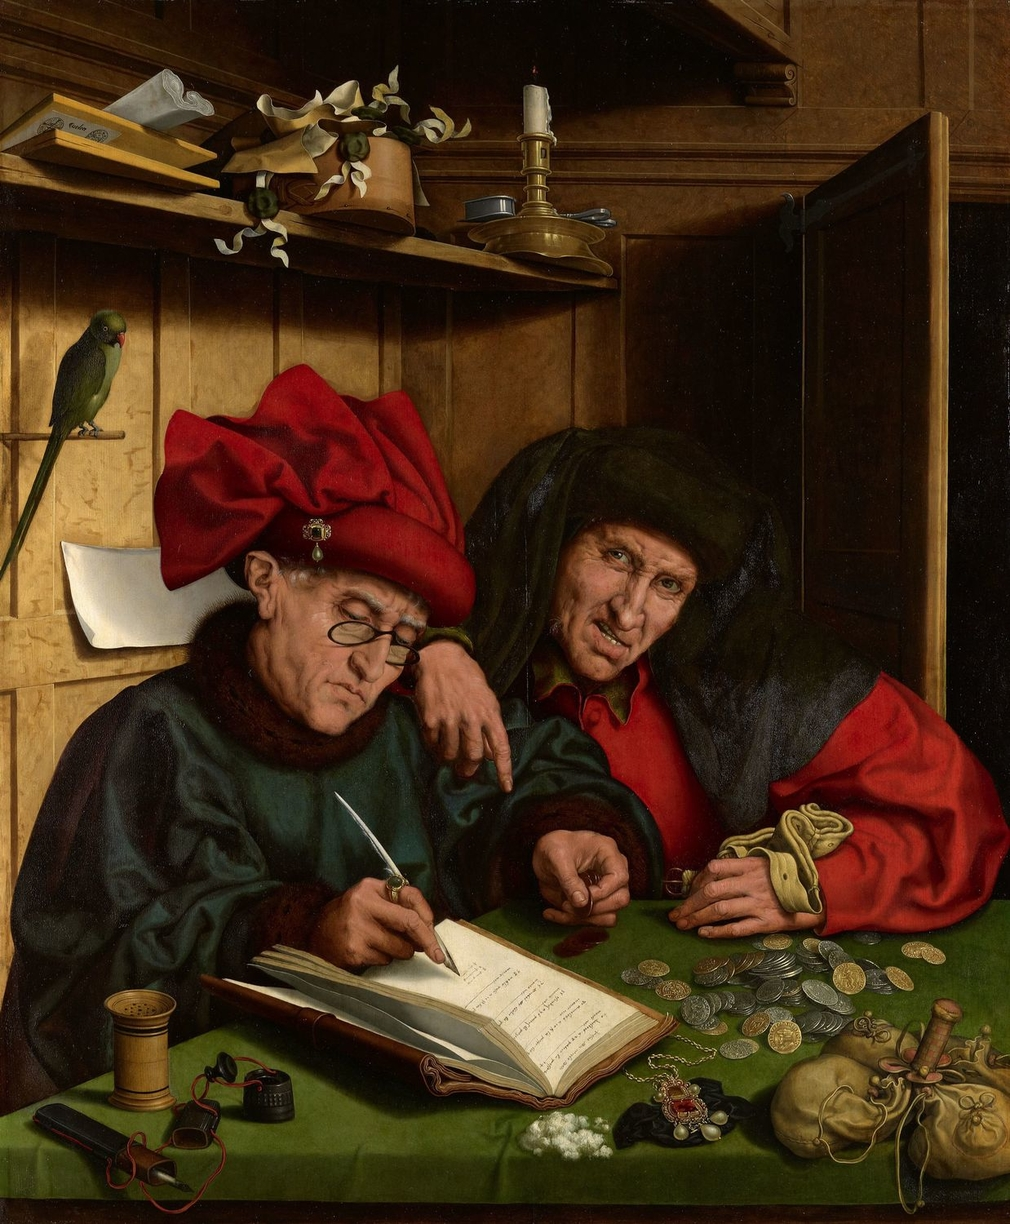 In c.1520 the Venetian nobleman Marcantonio Michiel saw a painting of a banker and his client in Milan by Jan van Eyck which he noted had been painted in 1440. The lost original appears to have been the catalyst for a popular type of painting in the sixte